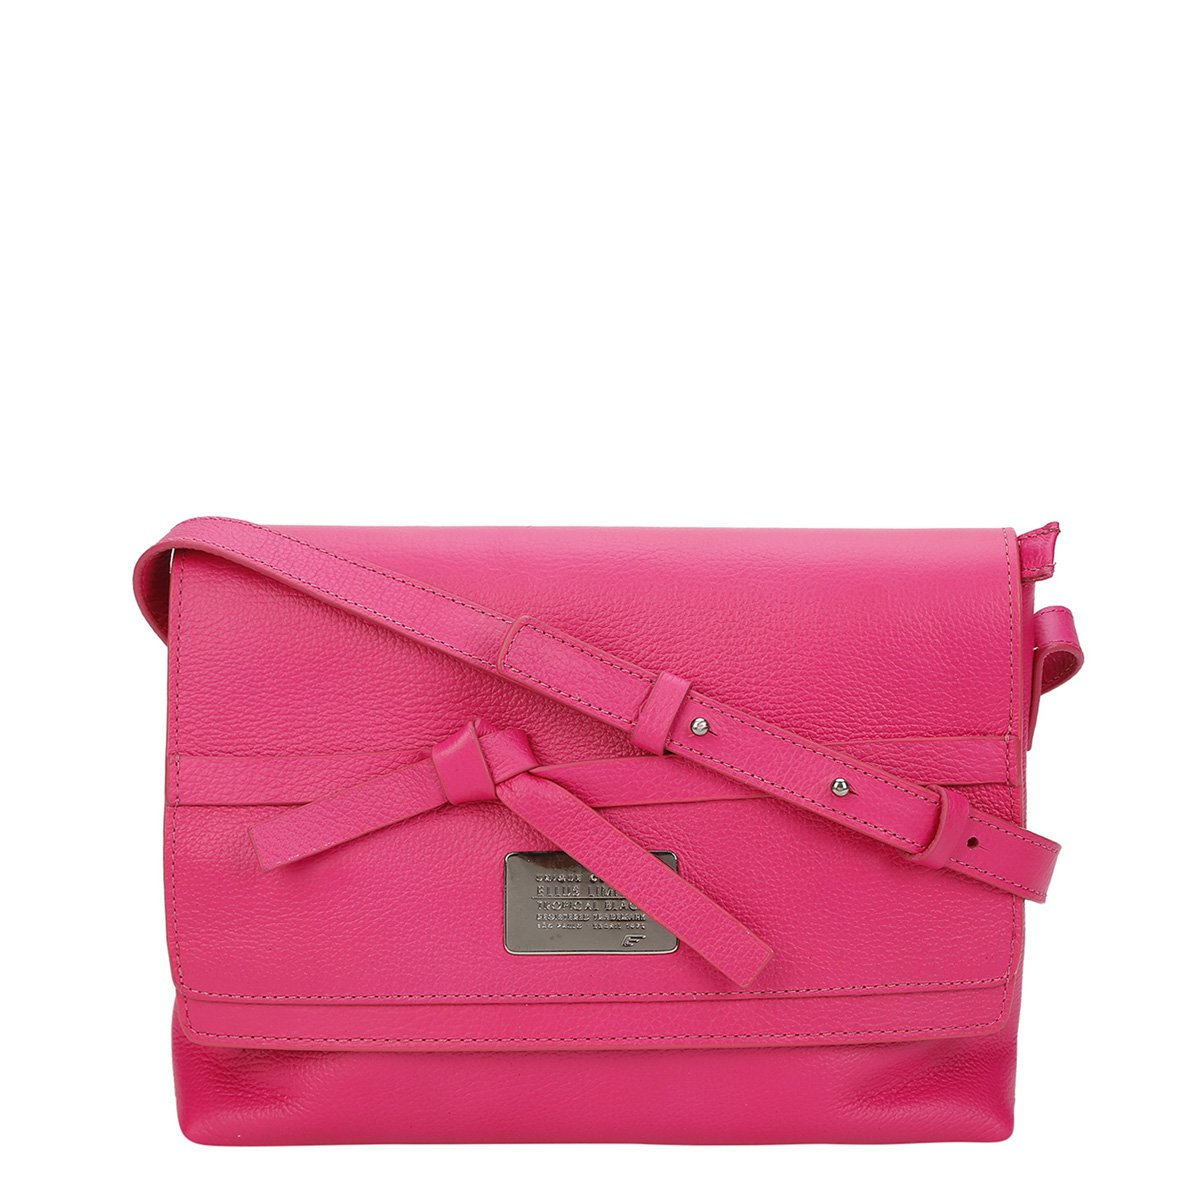 Bolsa Jorge Alex Satchel Bolso Frontal : Bolsa ellus shoulder bag soft rock pink